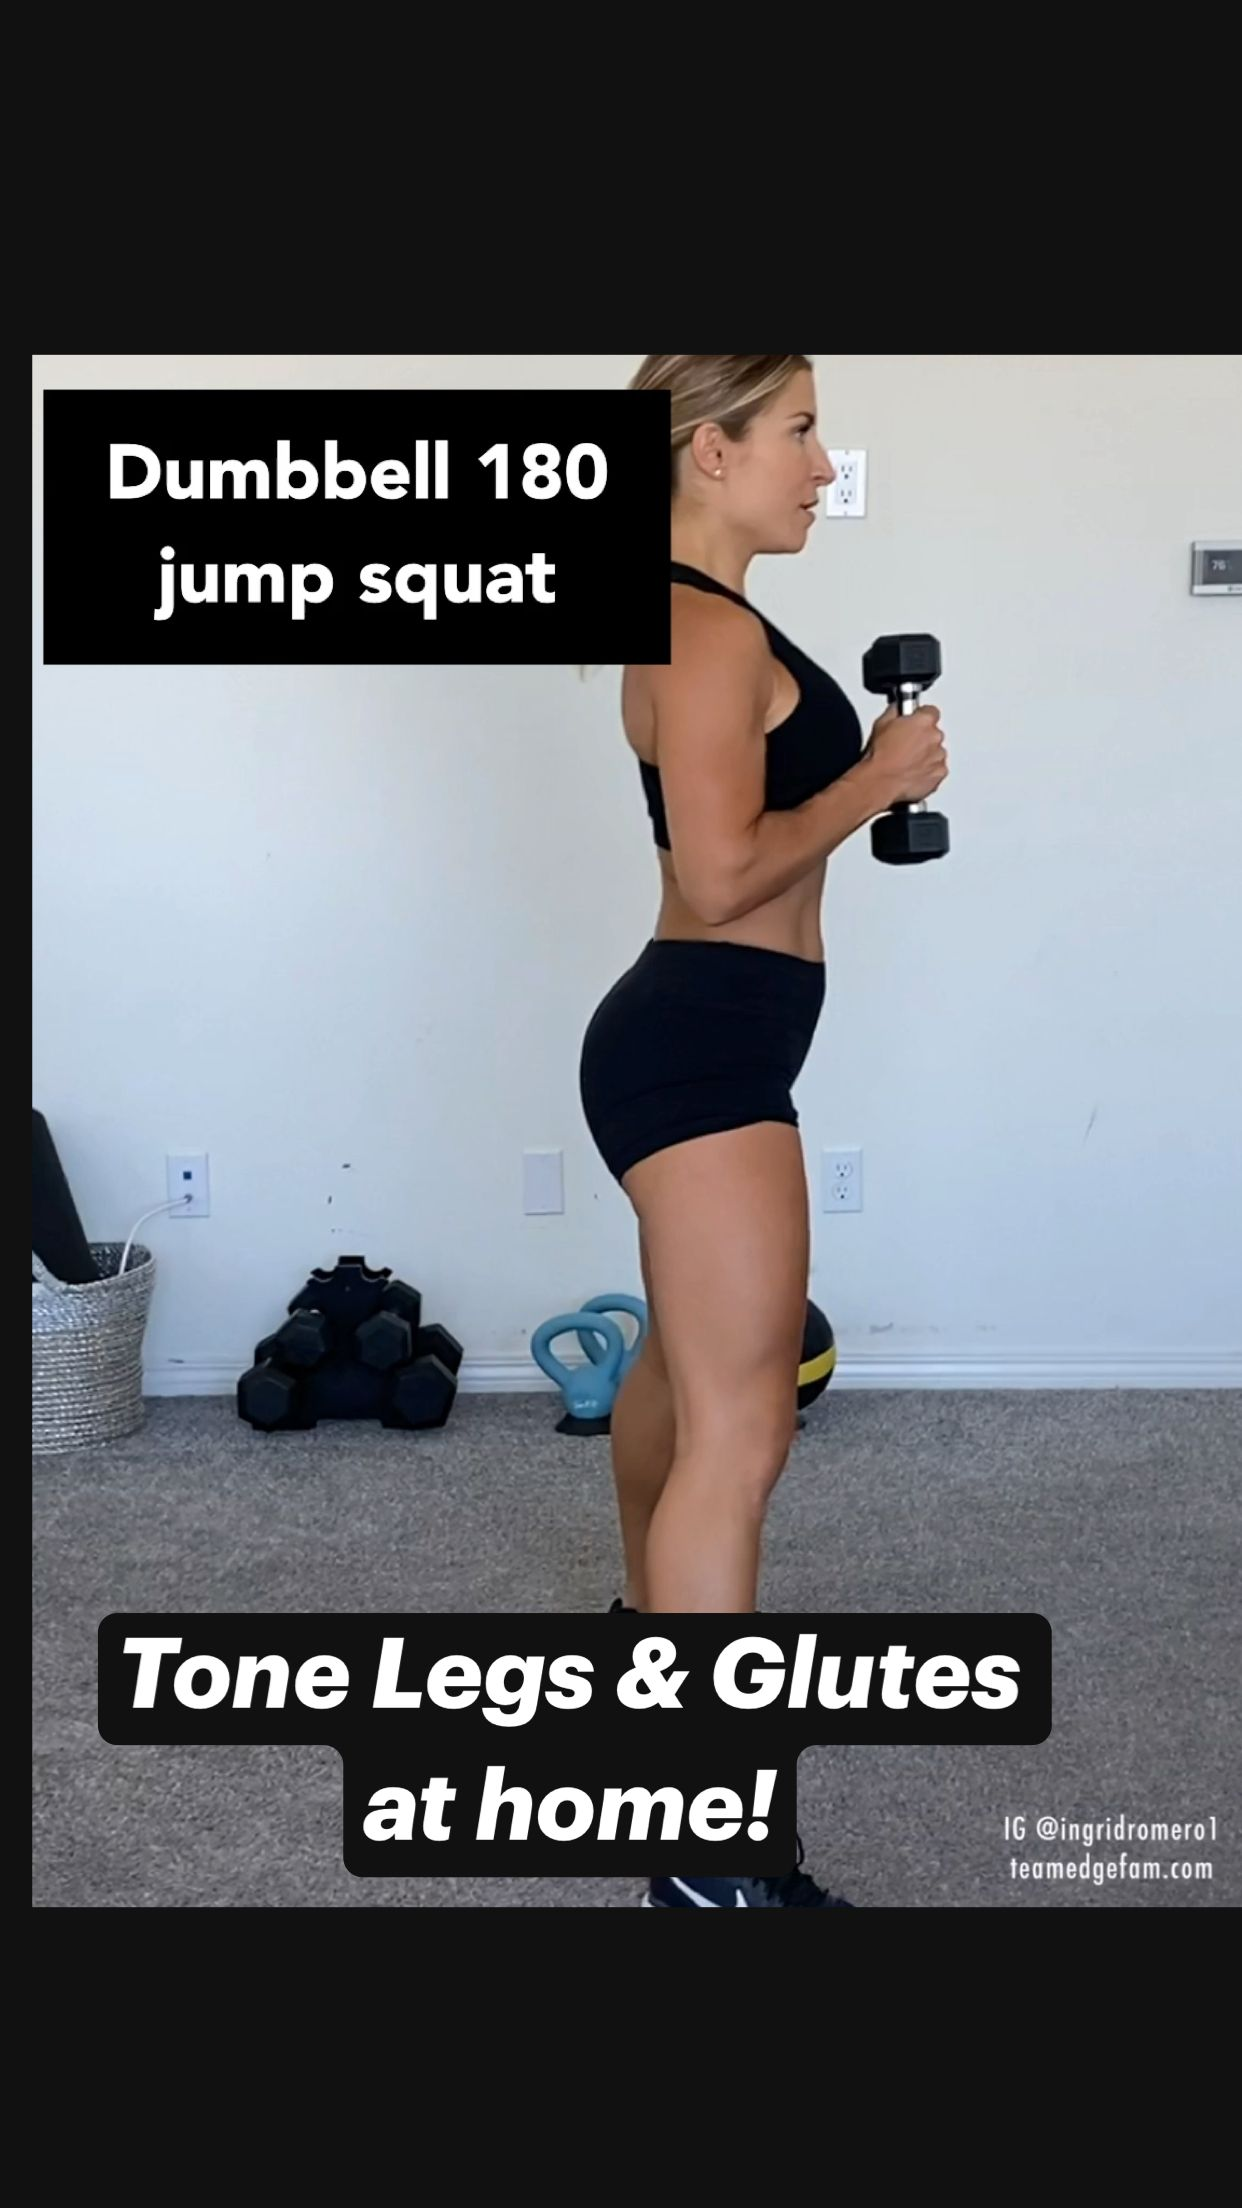 Tone Legs & Glutes at home!